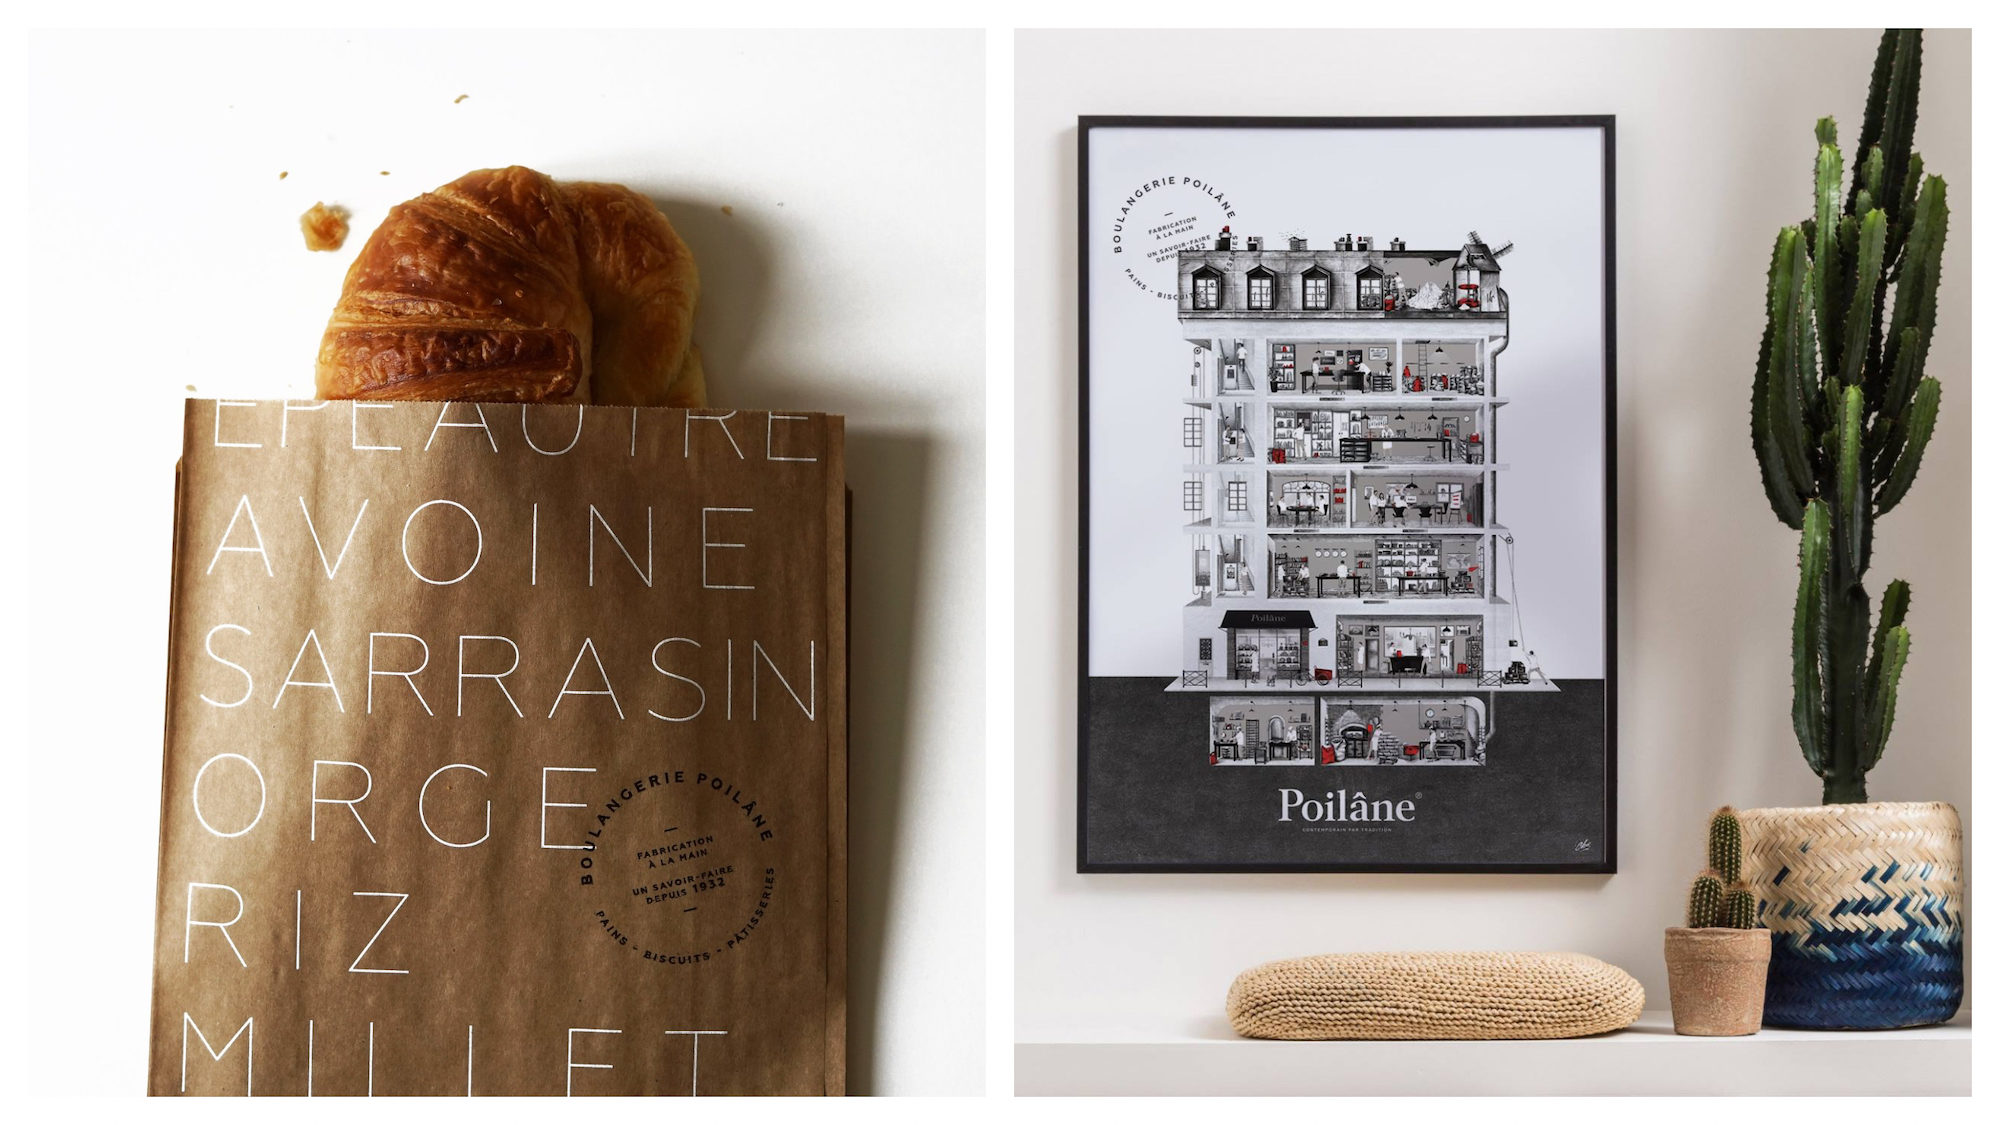 A buttery croissant from Poilane bakery on rue du Cherche-Midi in Paris (left). Artwork on the wall at Poilane bakery on rue du Cherche-midi in Paris.